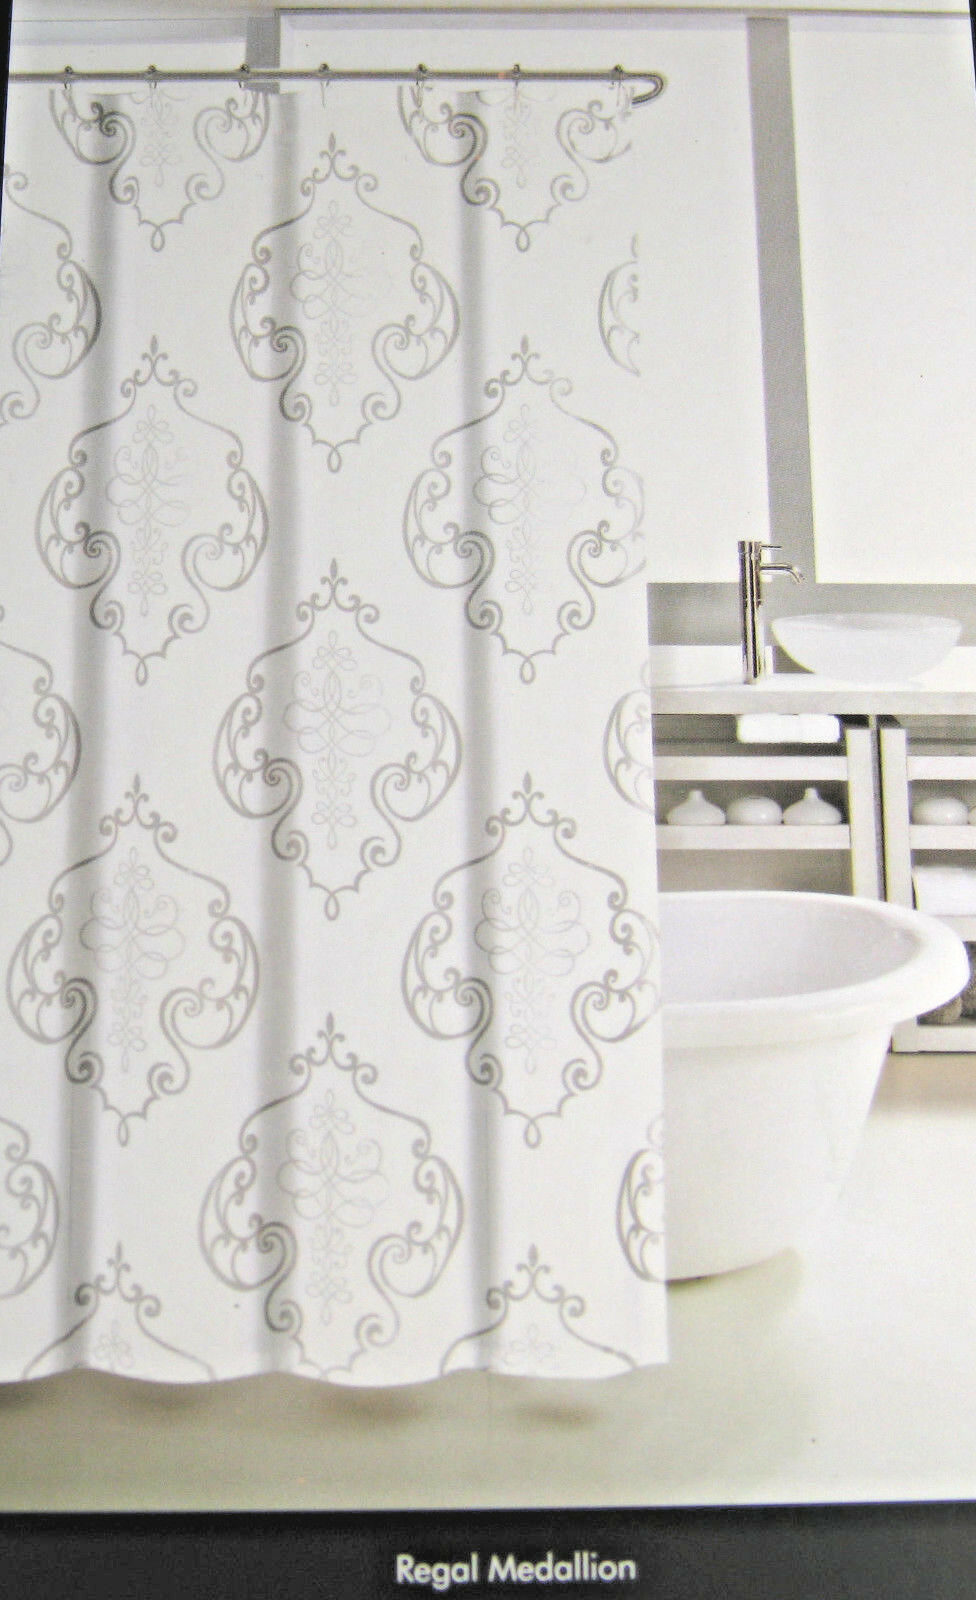 Tahari Fabric Shower Curtain Regal Medallion White/Gray/Silver 72 X 72 1 Of  2Only 1 Available ...